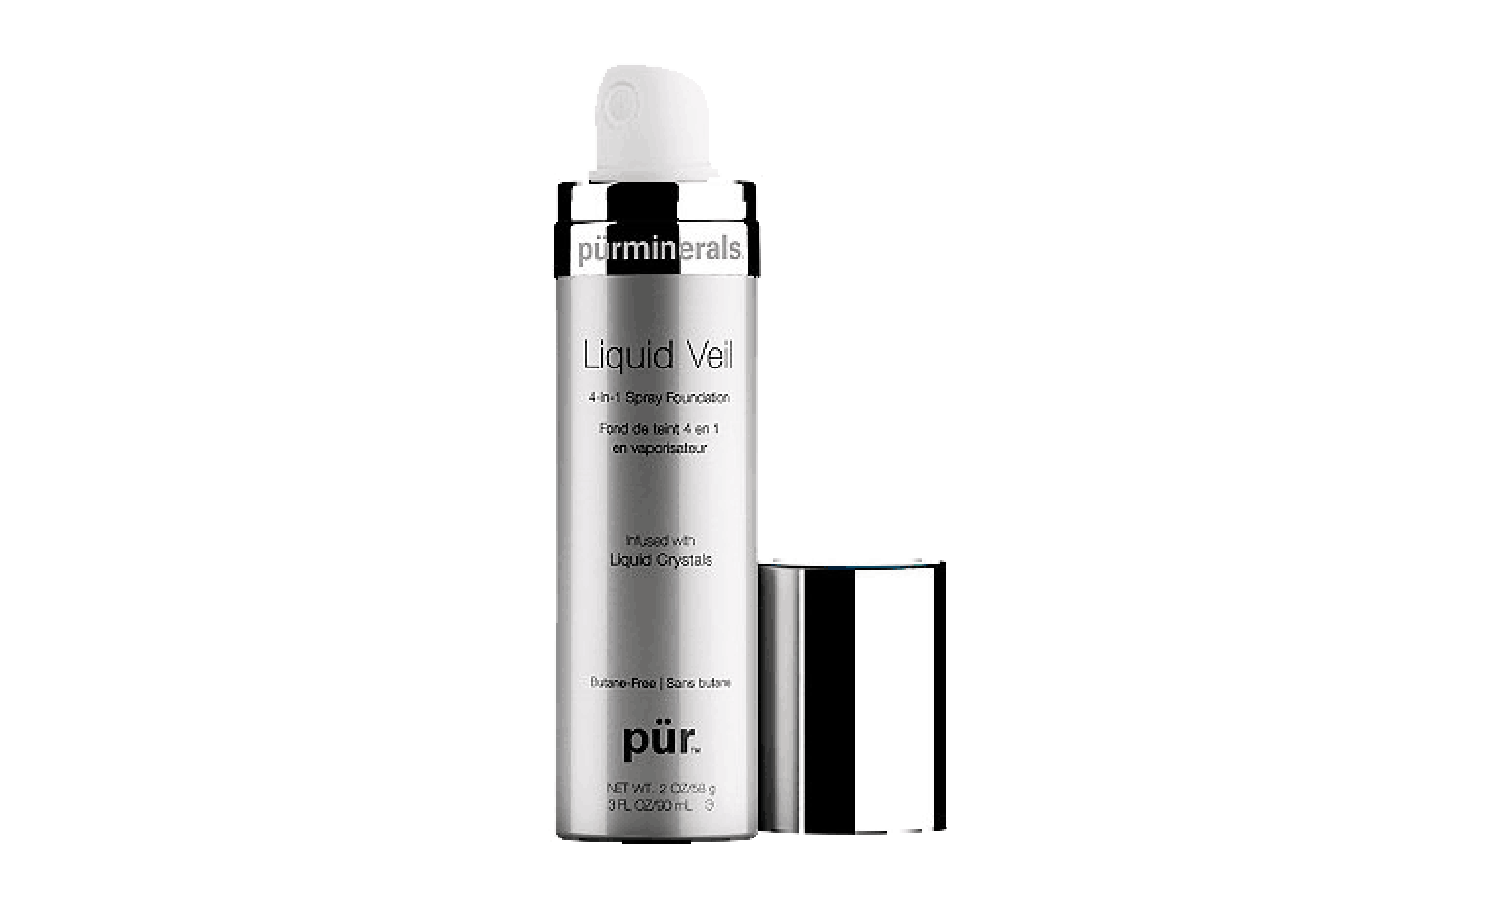 Liquid Veil 4-in-1 Spray Foundation by pur